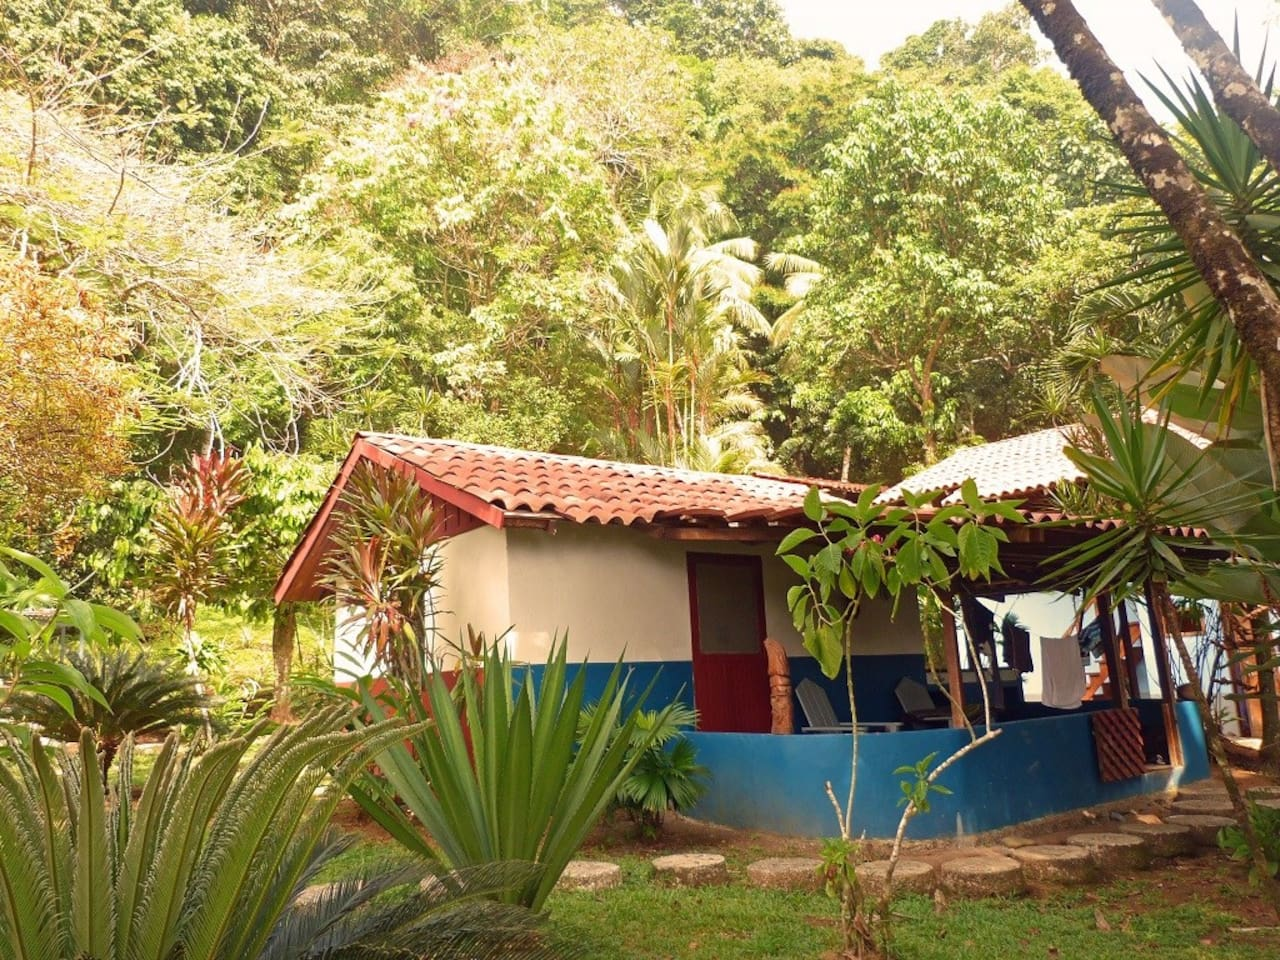 Casa Jardinero with patio